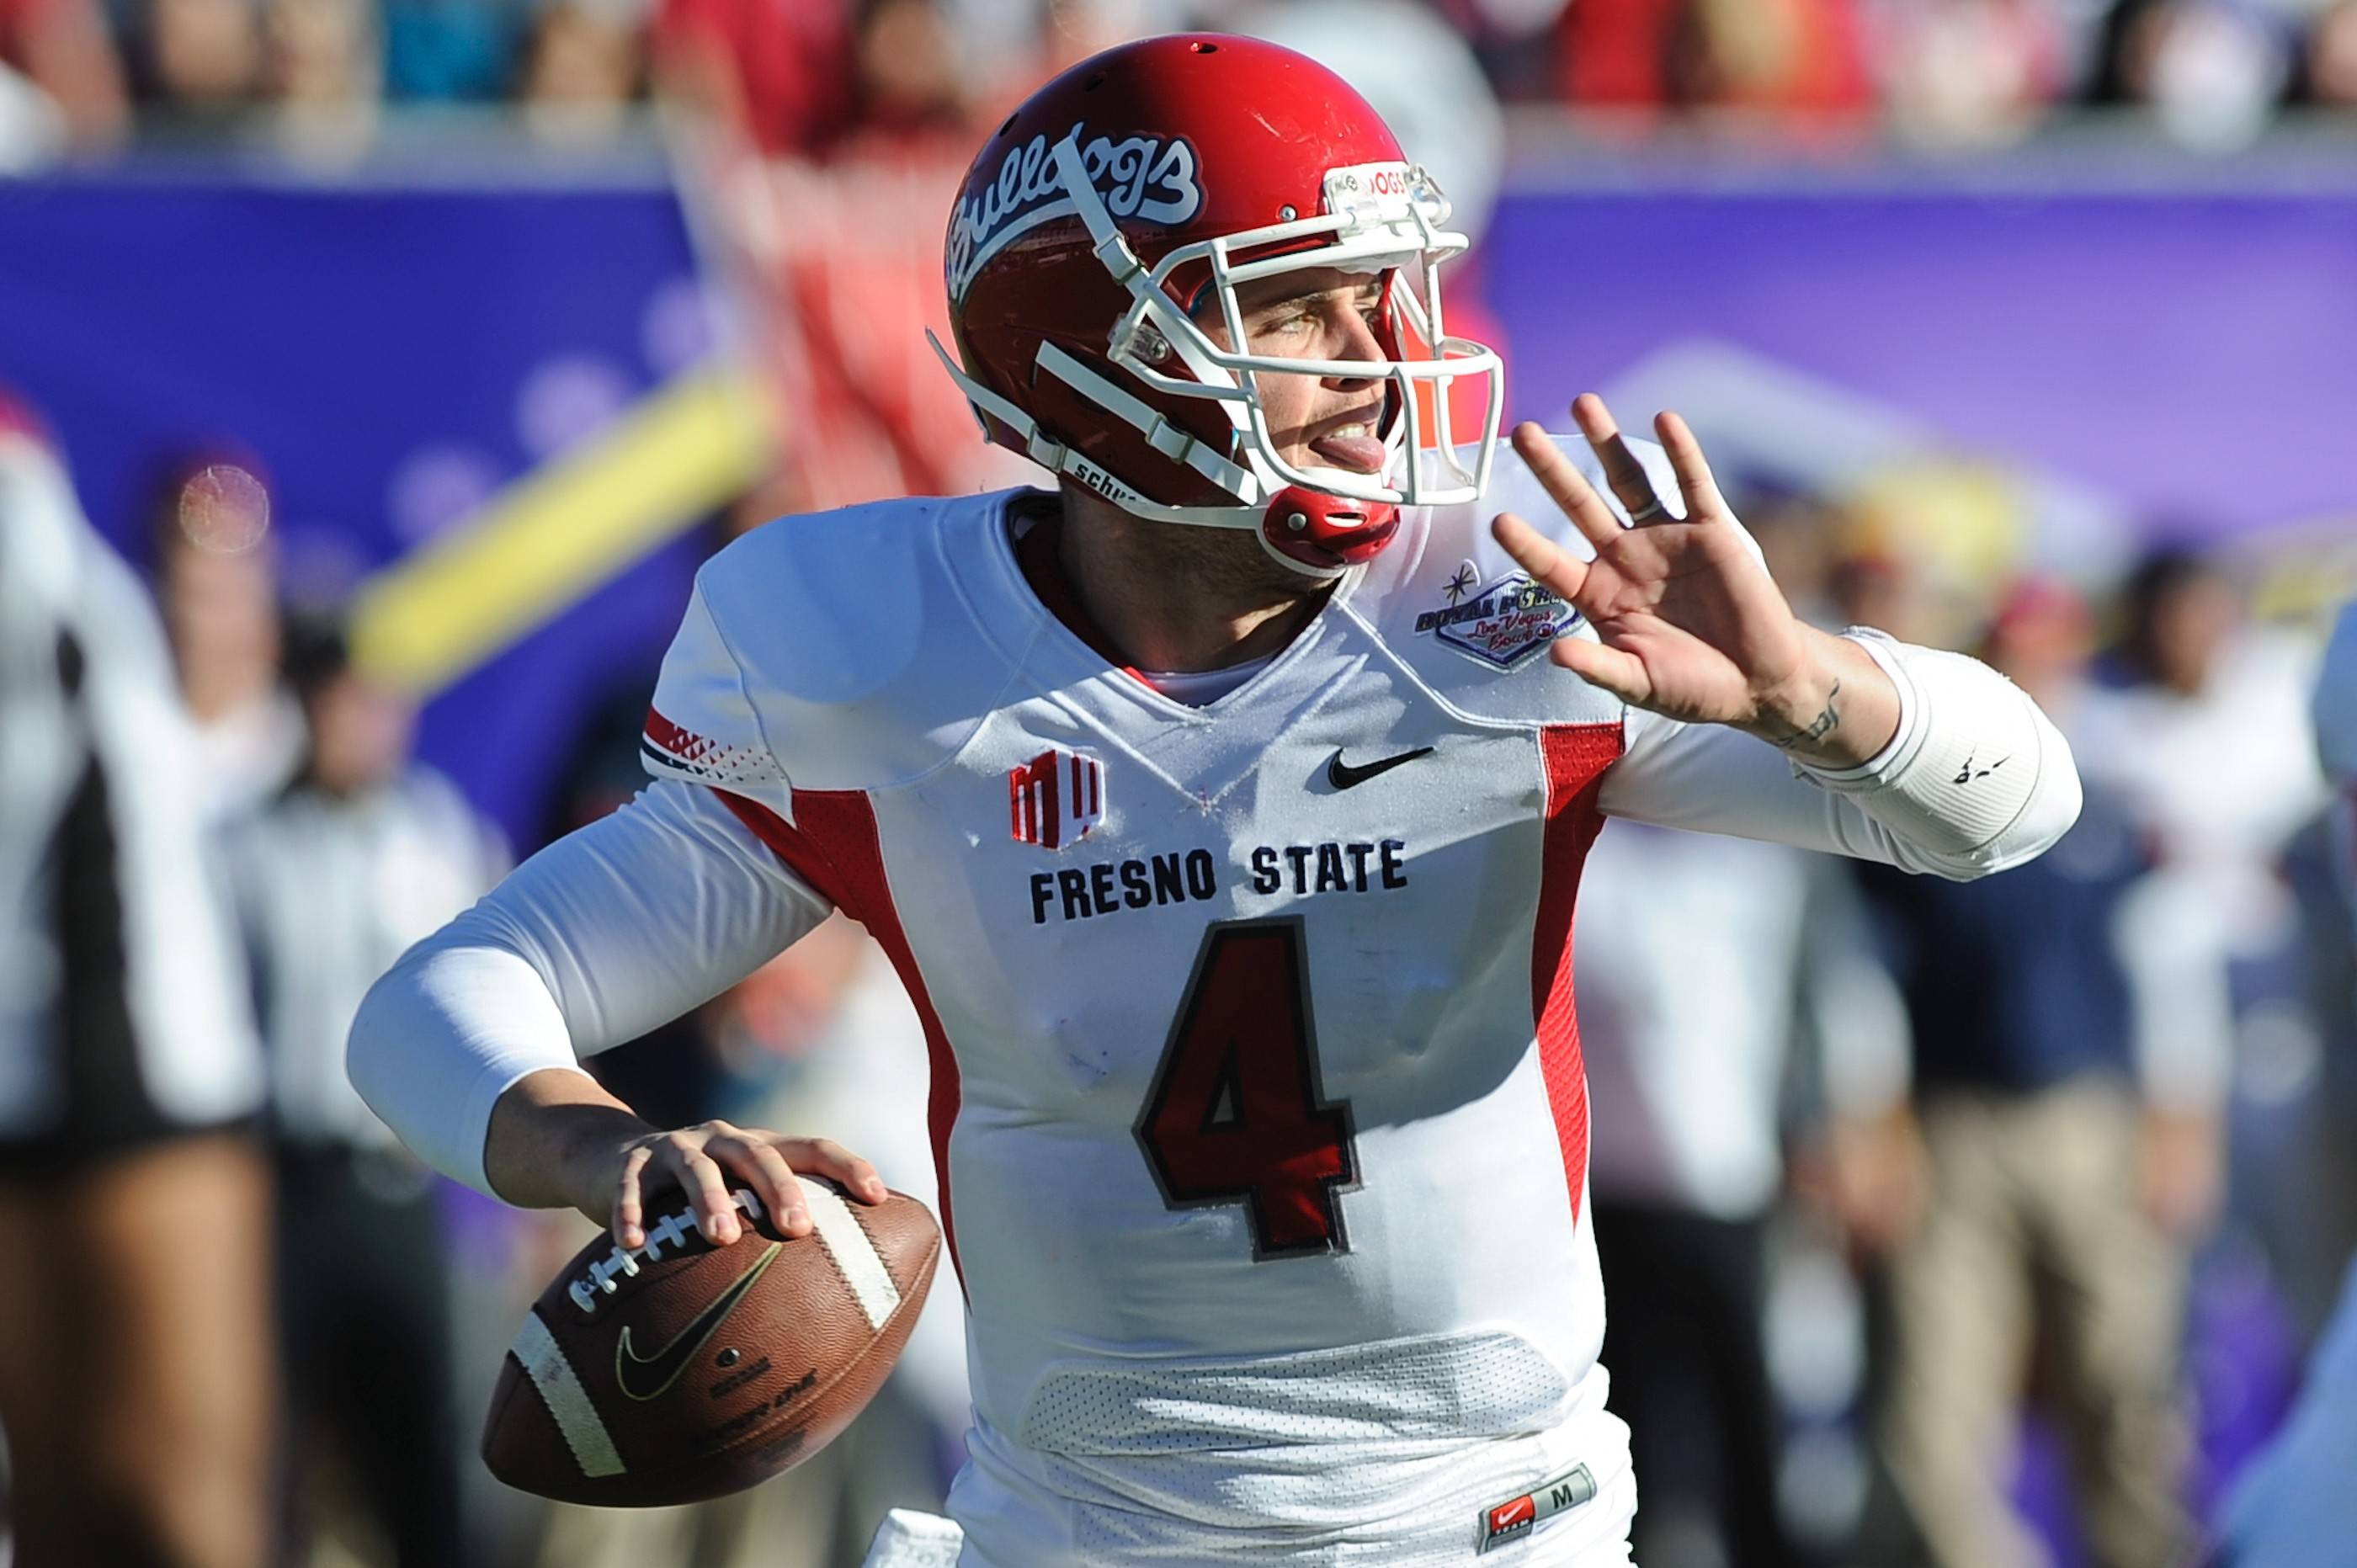 Fresno State quarterback Derek Carr 6-2⅜, 214). Bob LeGere's quick take: Excellent intangibles and NFL blood lines but he appears to be prone to mechanical breakdowns.